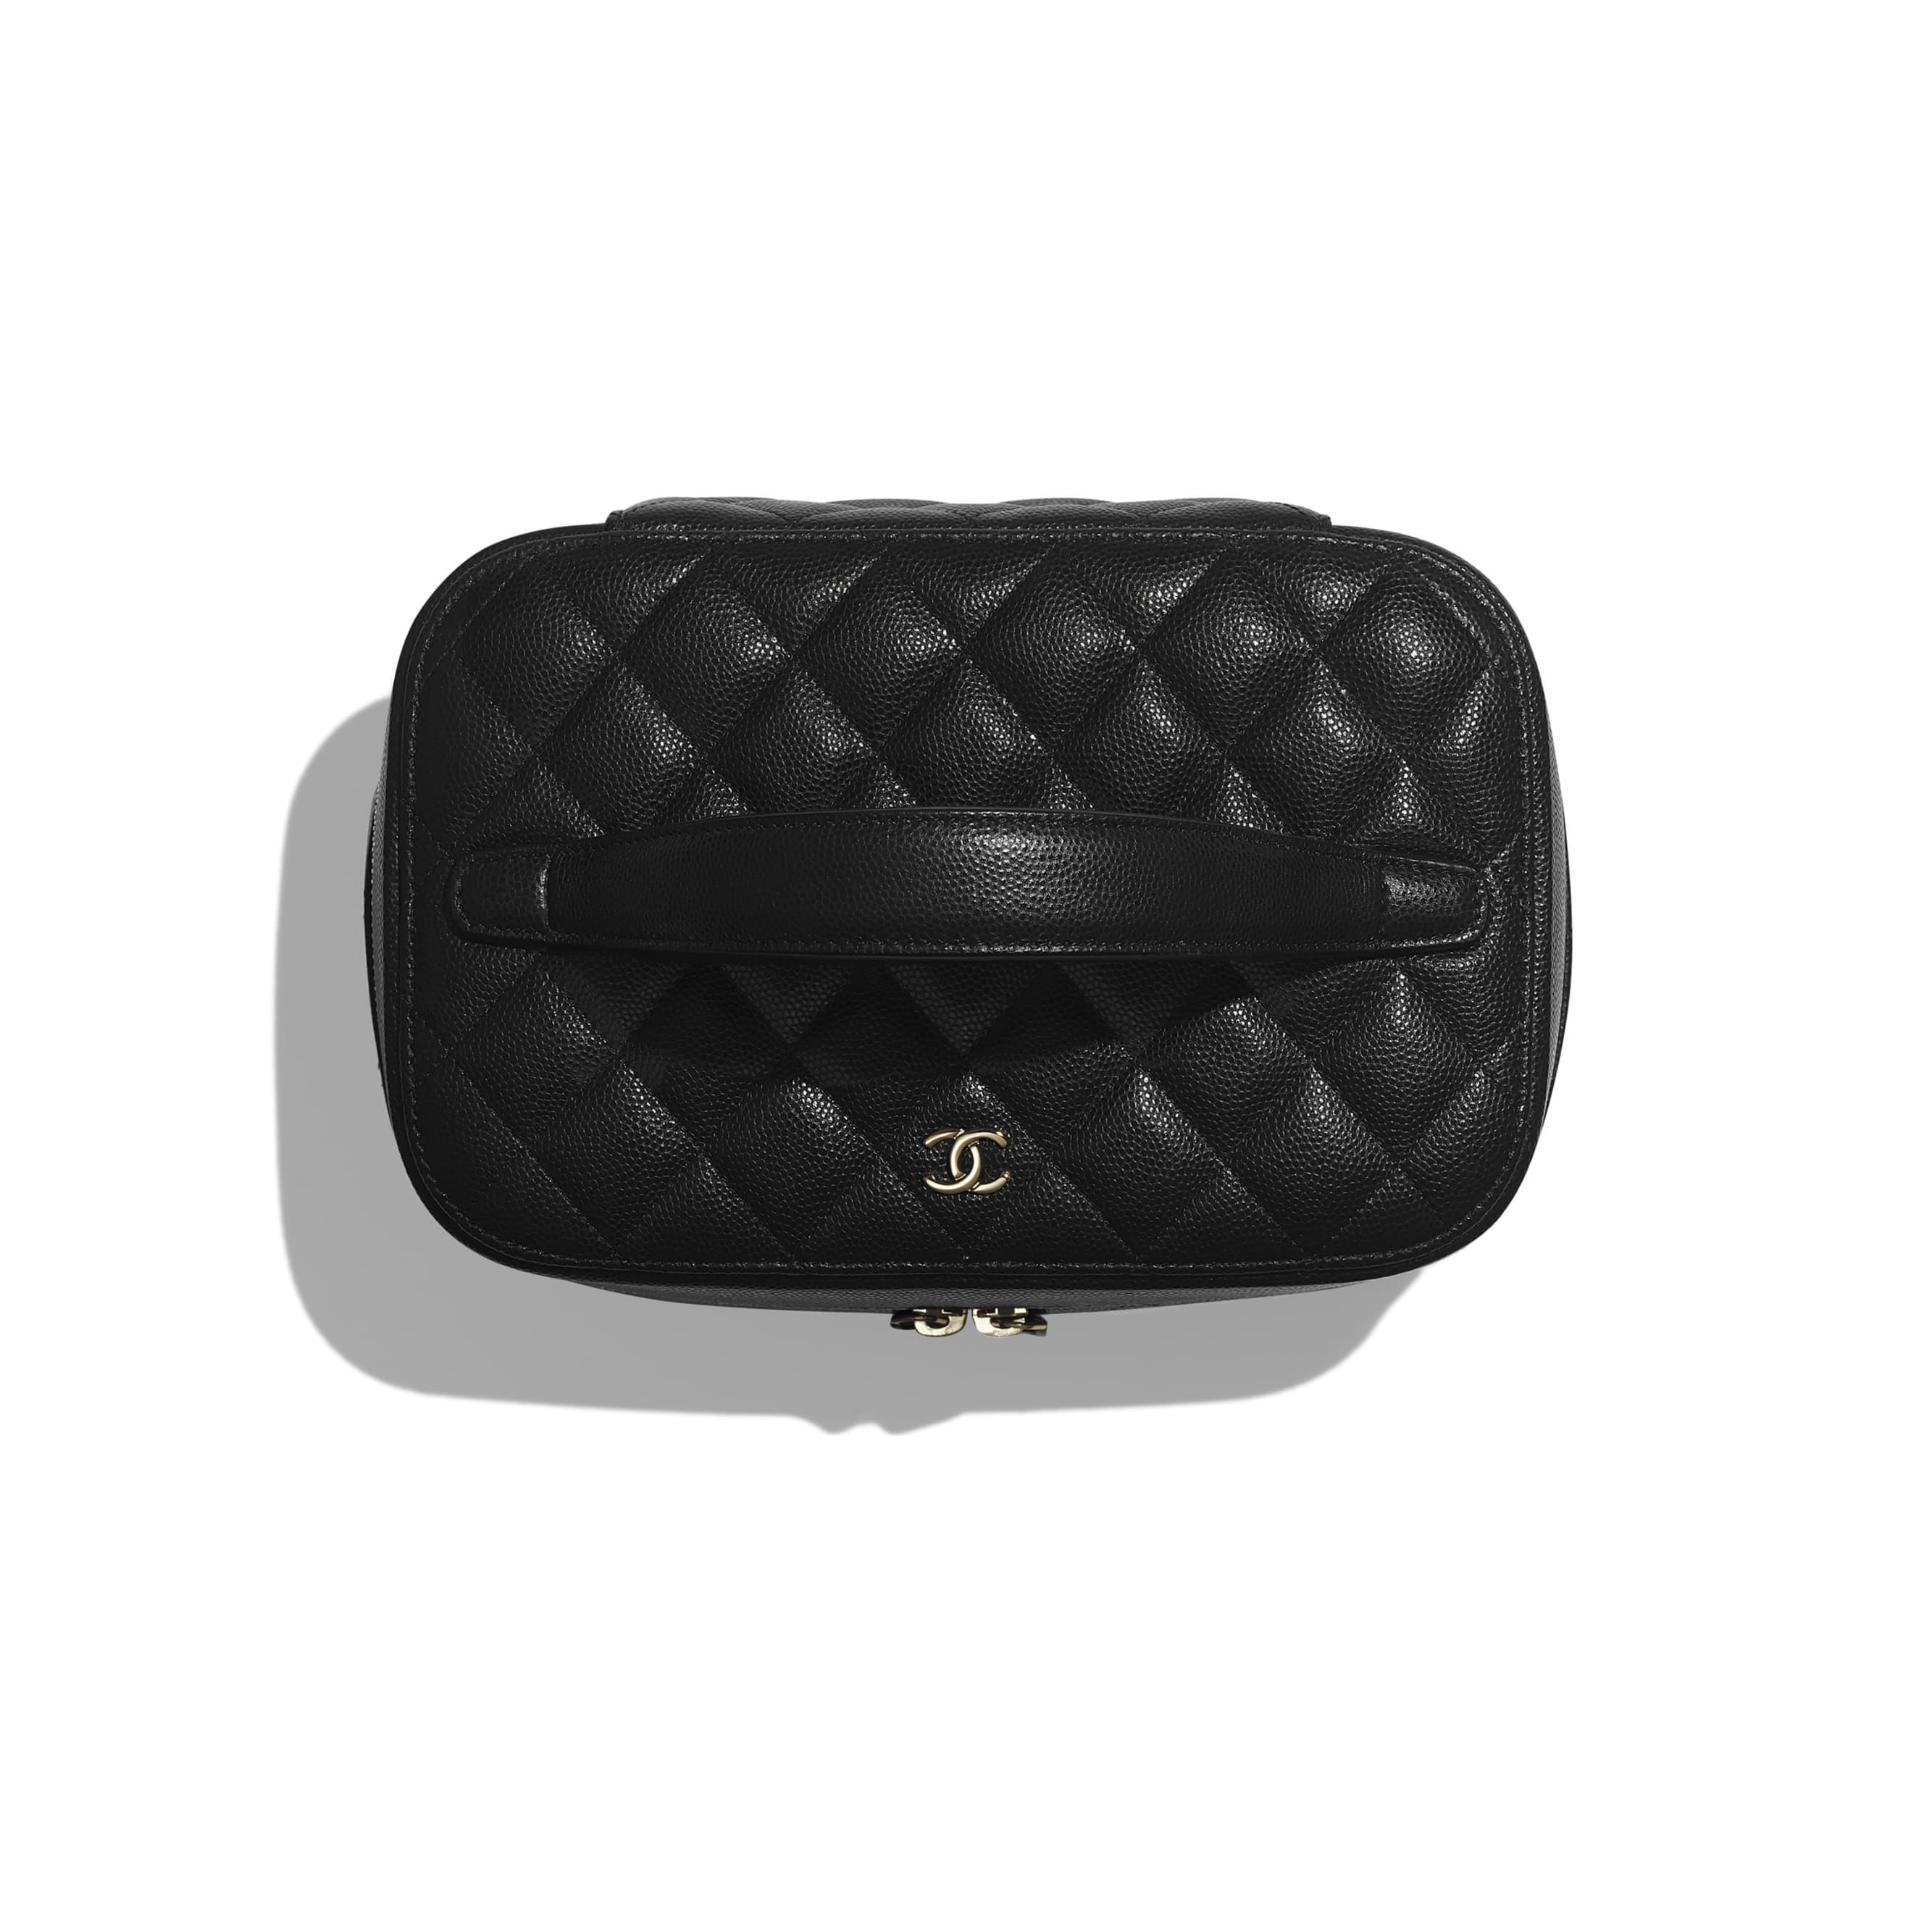 Classic Vanity Pouch - Black - Grained Calfskin & Gold-Tone Metal - Alternative view - see standard sized version